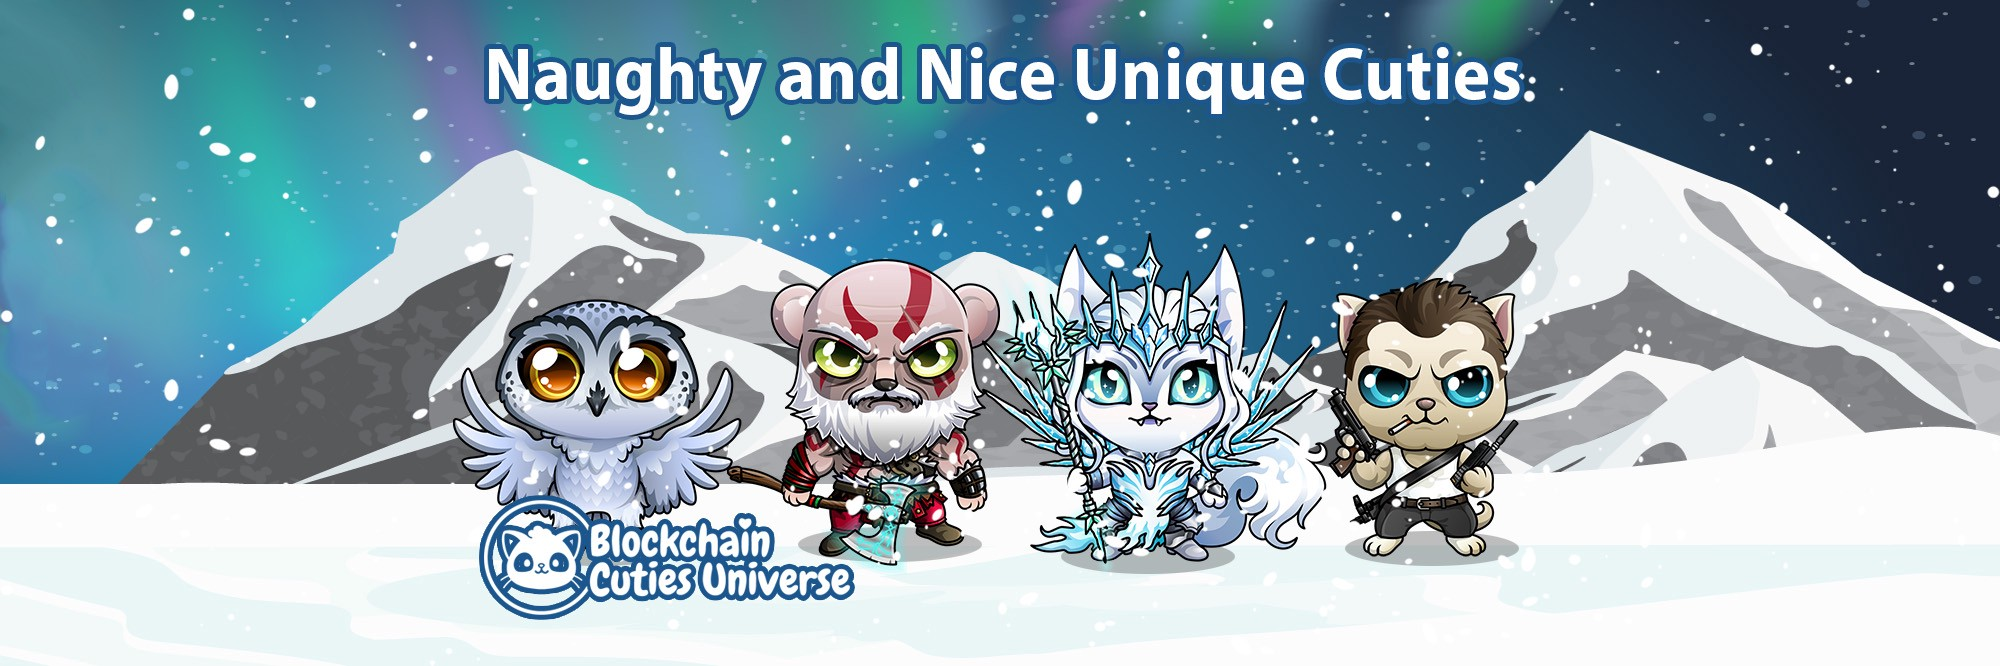 New Winter Unique Cuties Are Here!